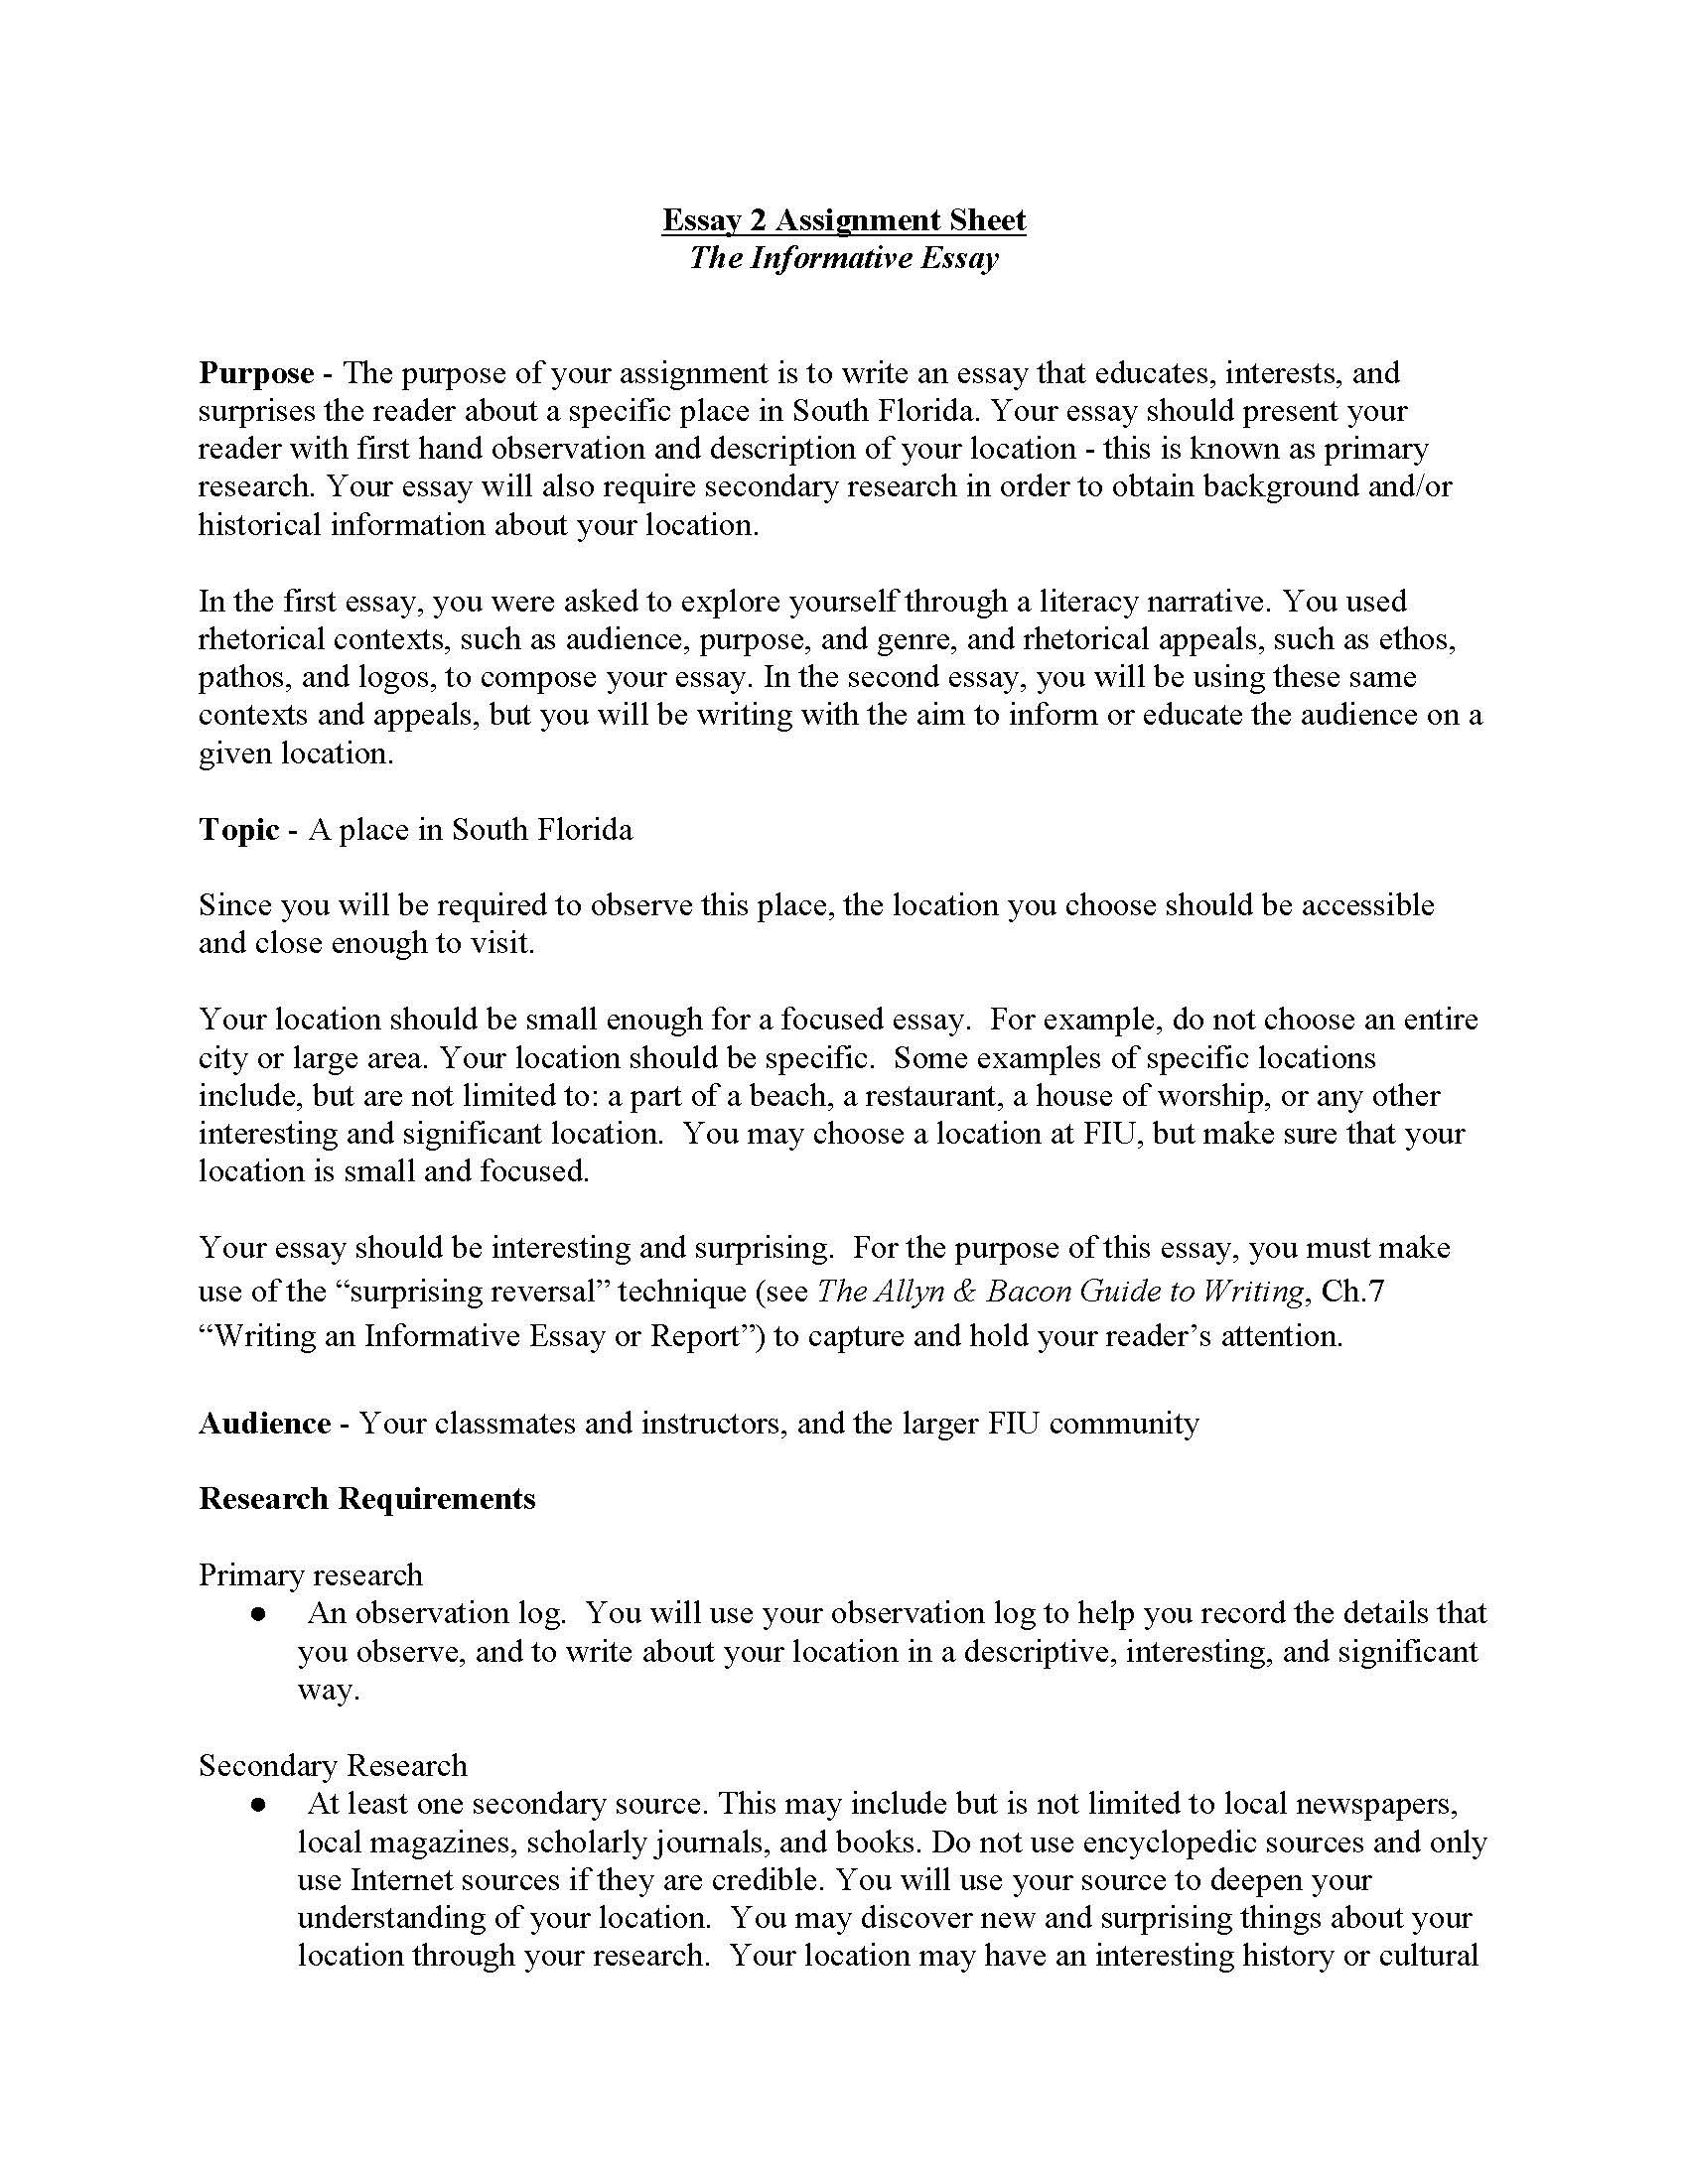 othello essays on jealousy hamlet critical analysis essay othello  inform essay sample informative essay oglasi sample informative sample informative essay oglasi coinform essay informative essay